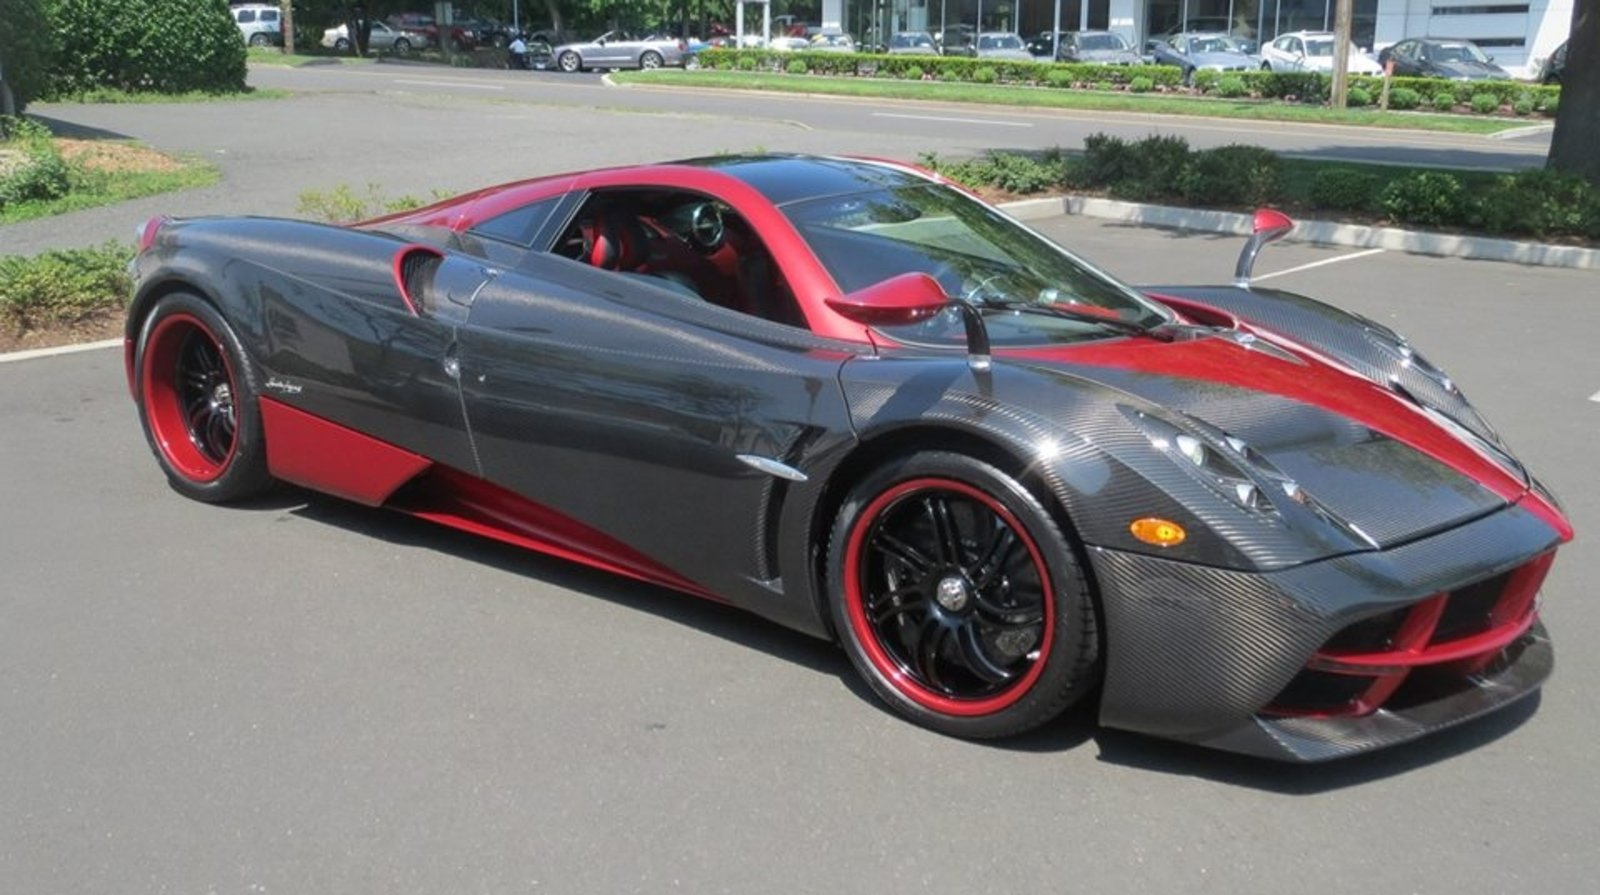 Pagani Huayra For Sale >> First Pagani Huayra Arrives At A U.S. Dealer News - Top Speed